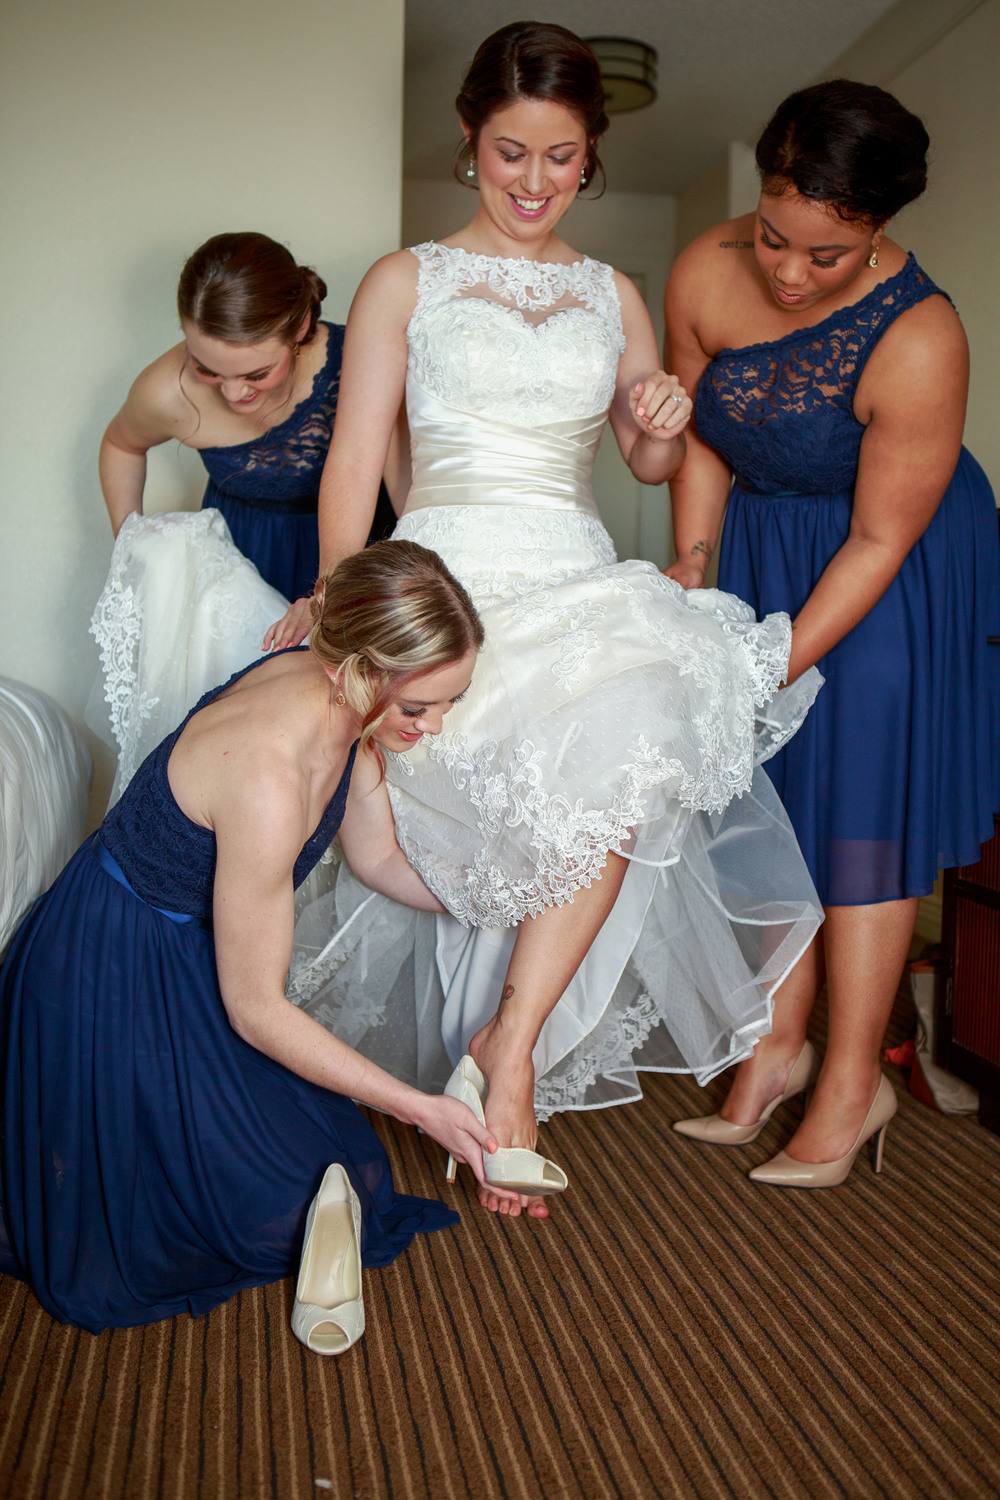 Wilmington_NC_Photographer_128_South_Wedding_Tiffany_Abruzzo_Photography_Girls_88.jpg